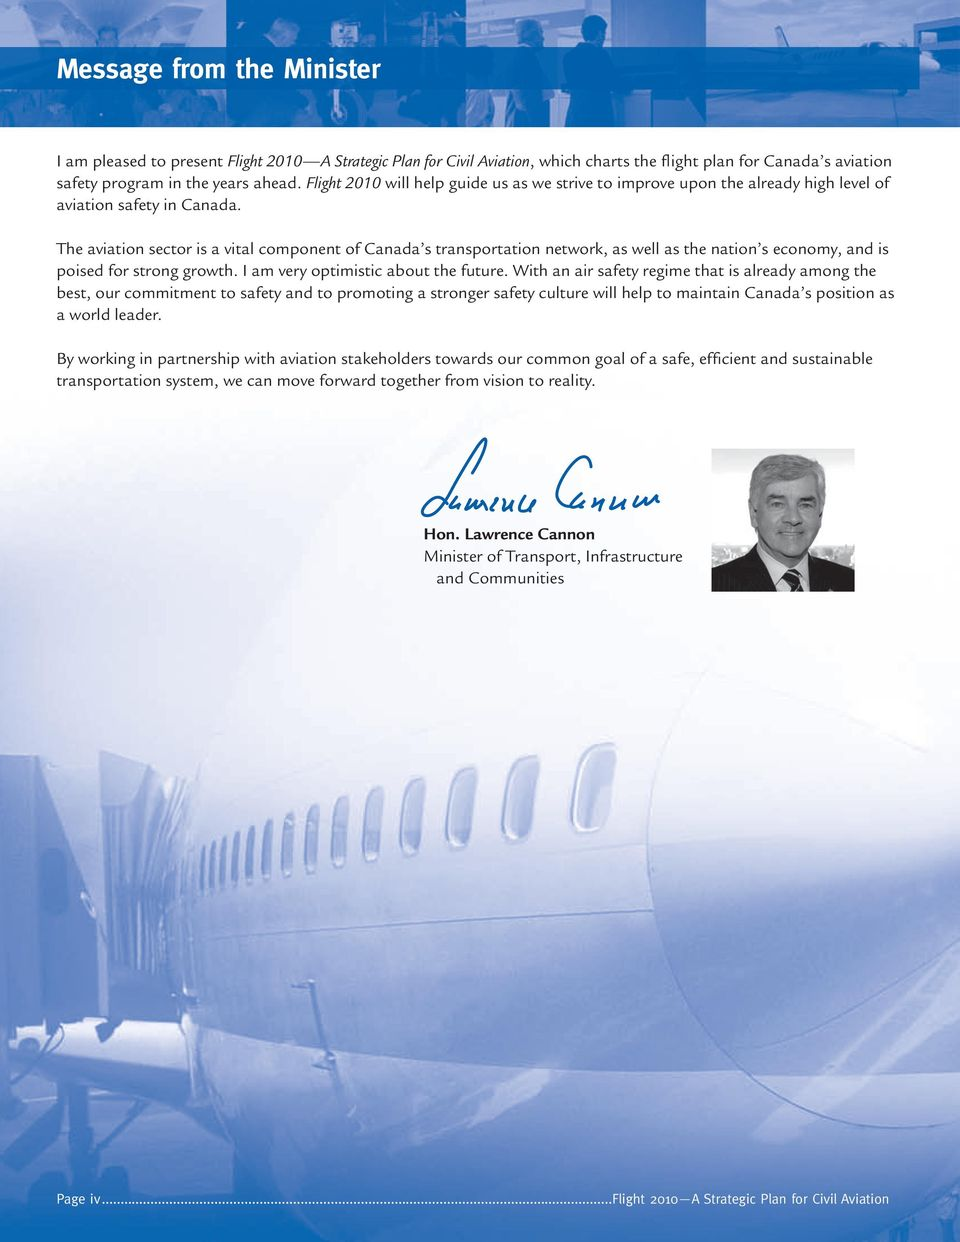 The aviation sector is a vital component of Canada s transportation network, as well as the nation s economy, and is poised for strong growth. I am very optimistic about the future.